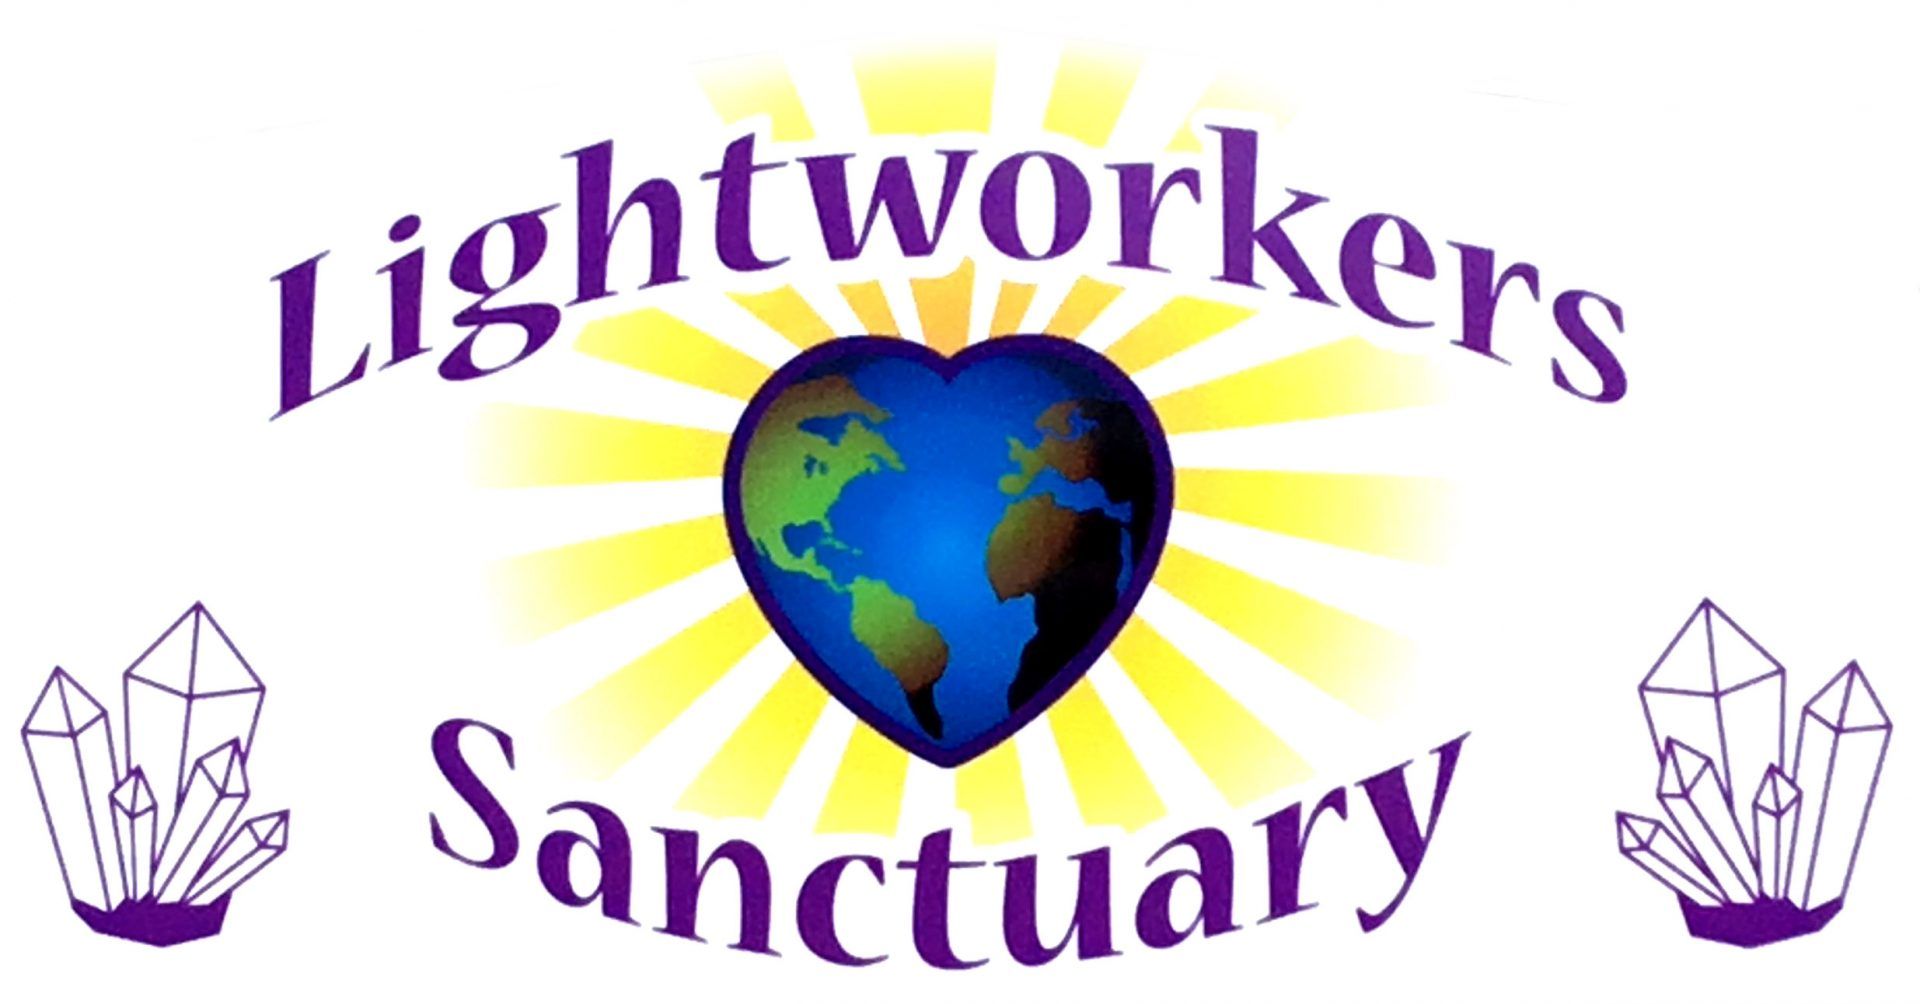 Lightworkers Sanctuary Has Taken Precautions During The Coronavirus Shutdown And Is Now Open